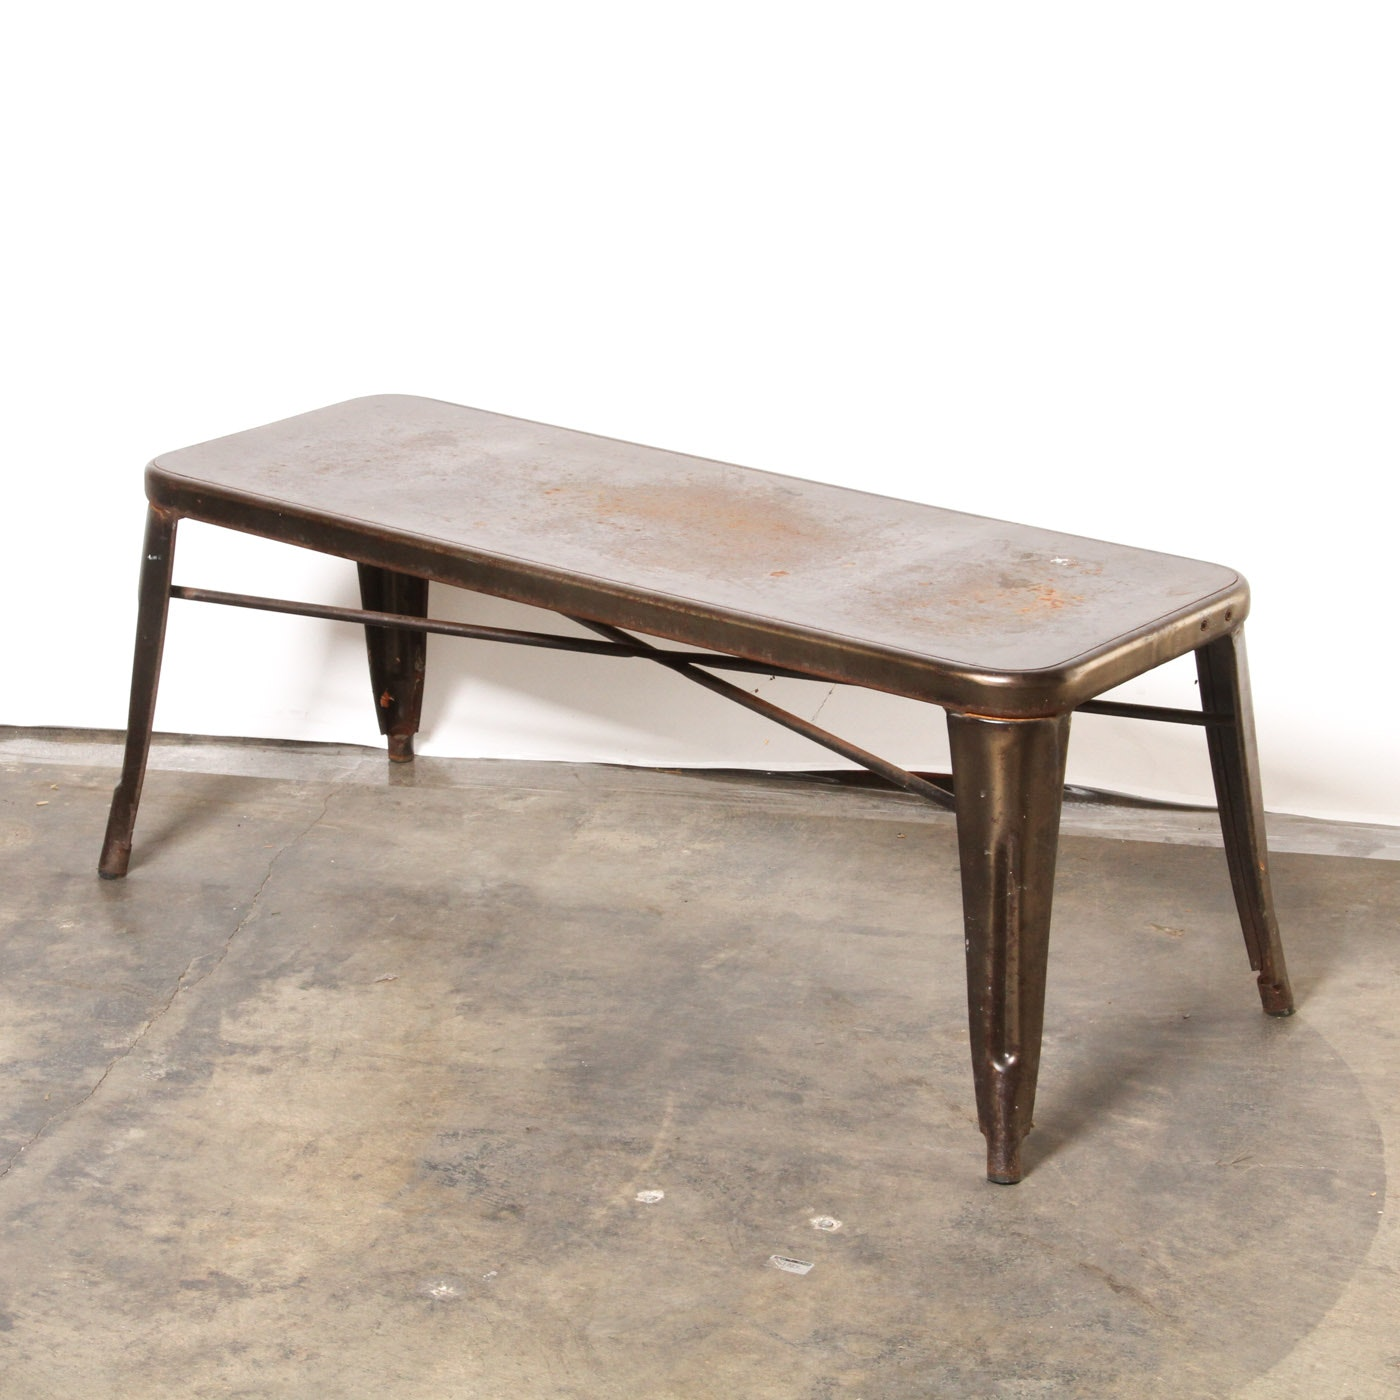 Mid-Century Industrial Style Bench